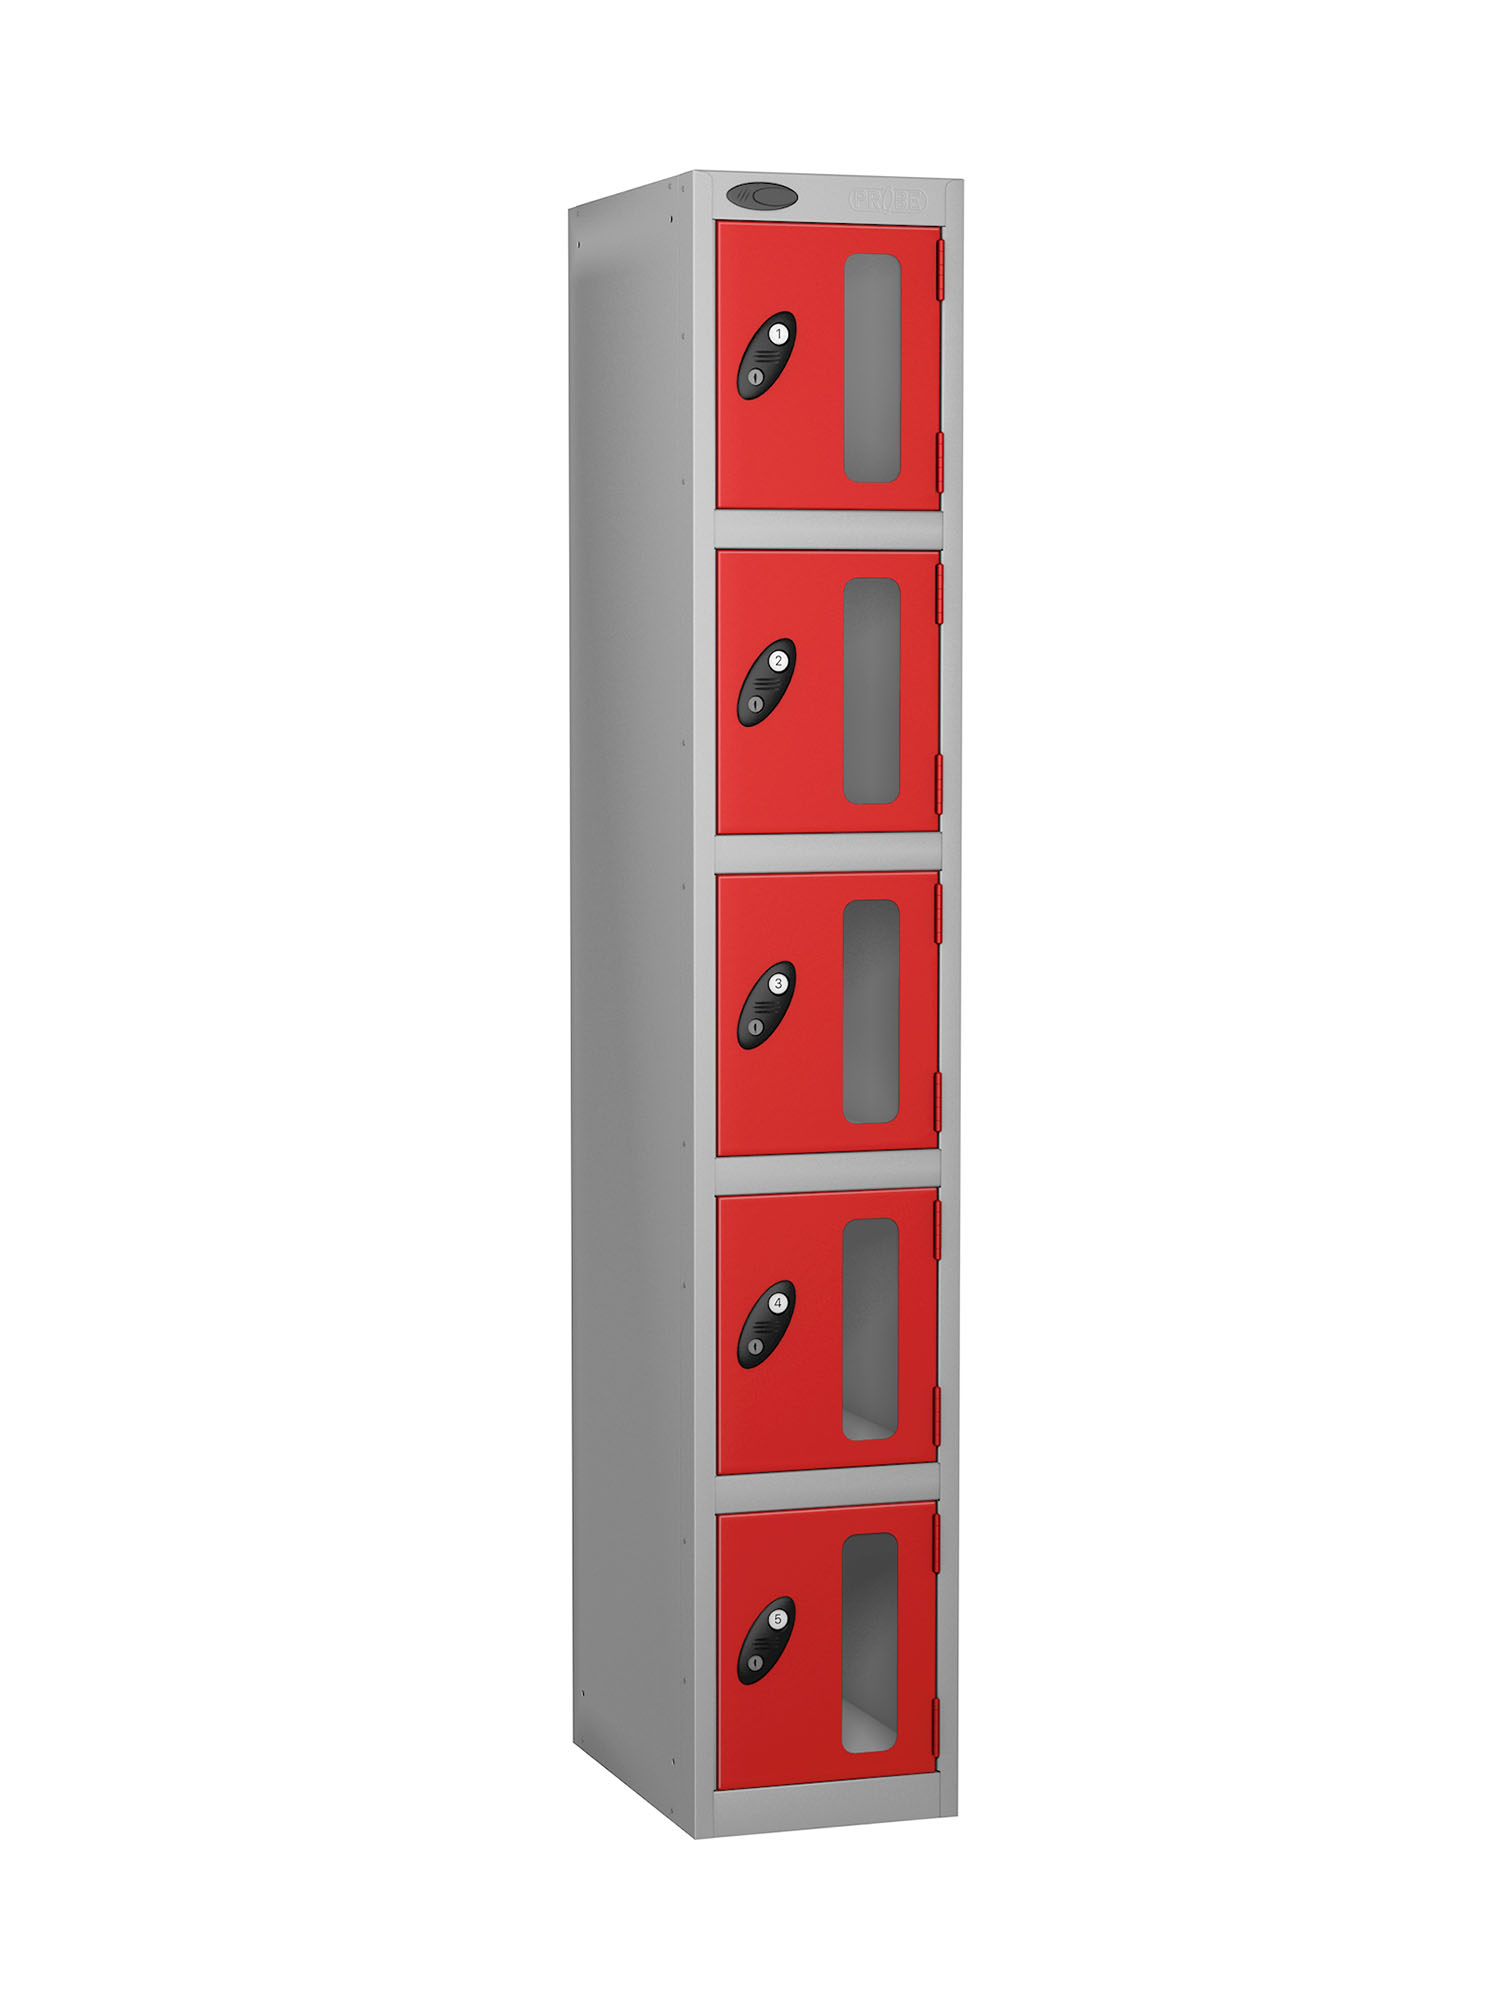 Probe 5 doors vision panel anti-stock theft locker red